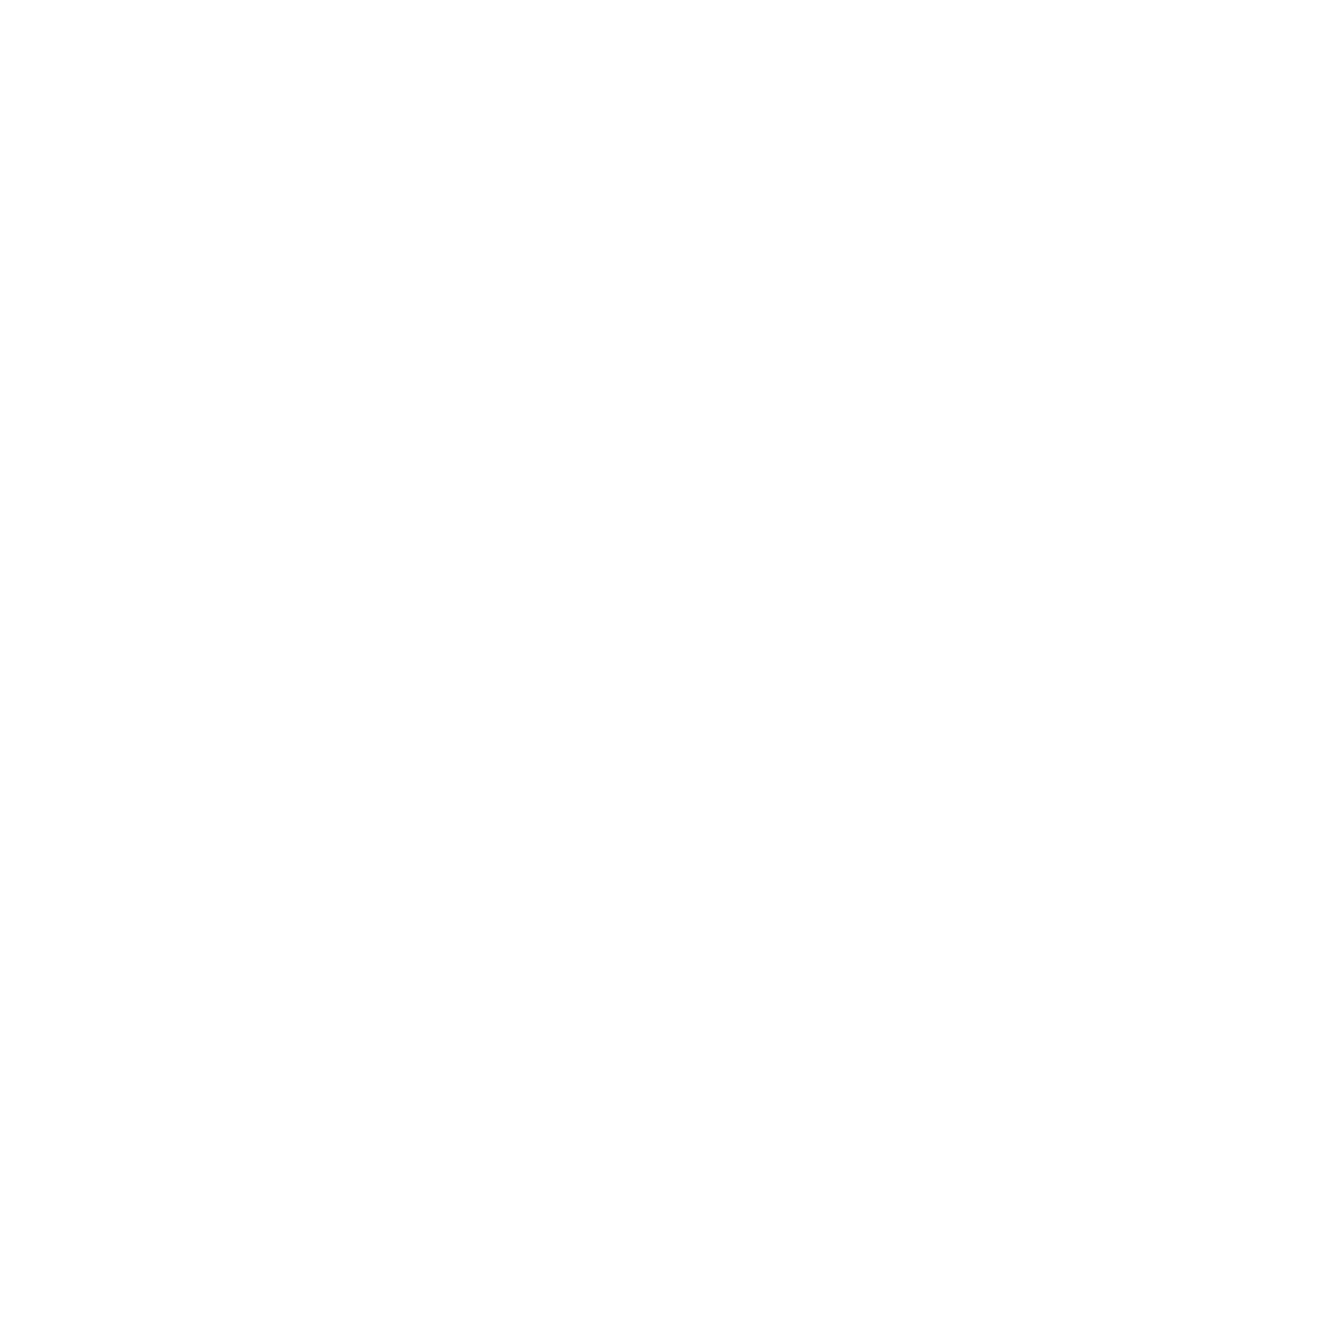 watch this space - Lowercase (1).png